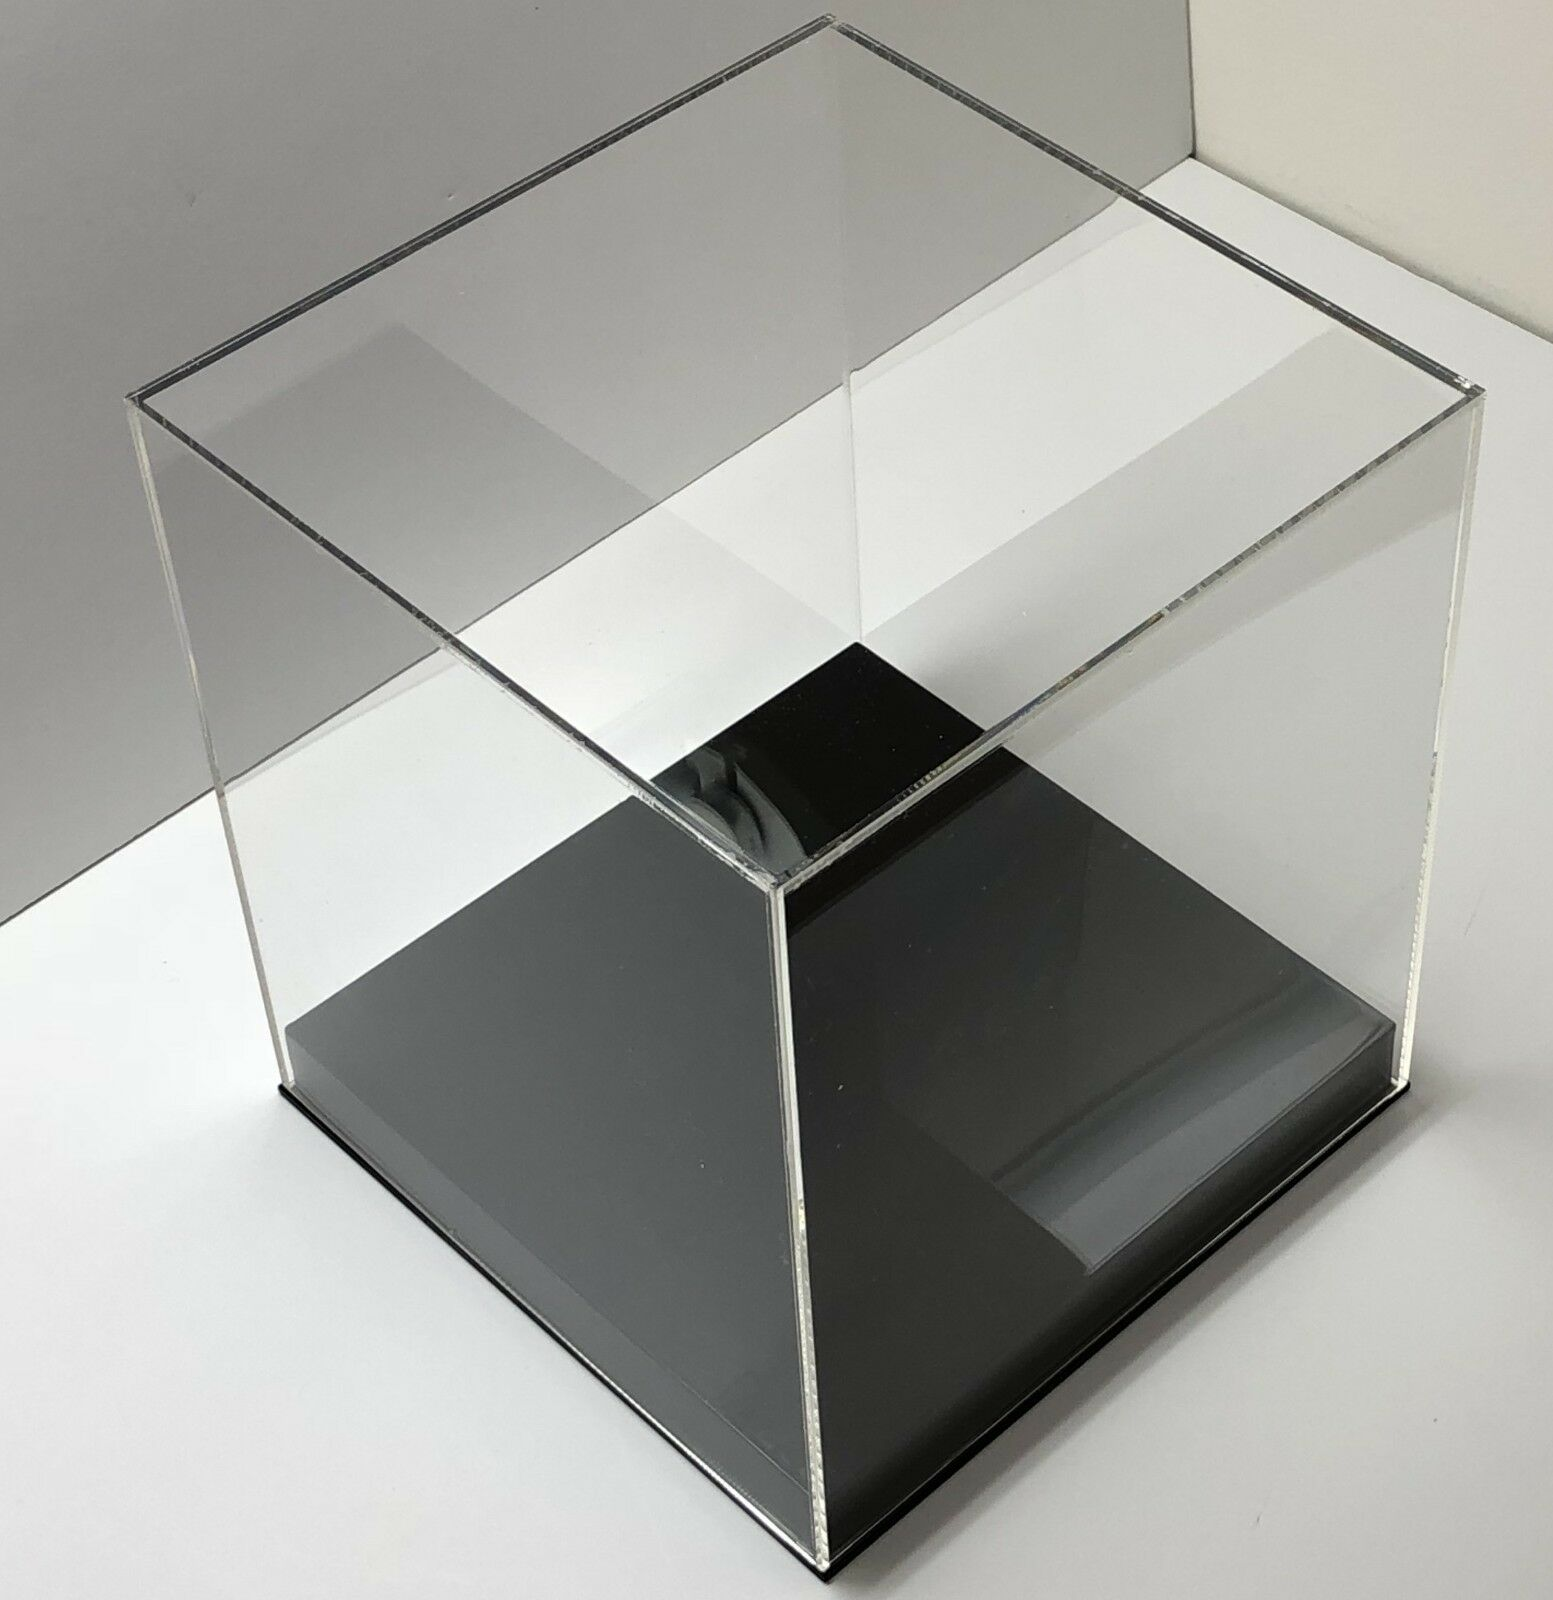 Photo Acrylic Display Box With BASE Display Case Clear Showcases Store Display Cube